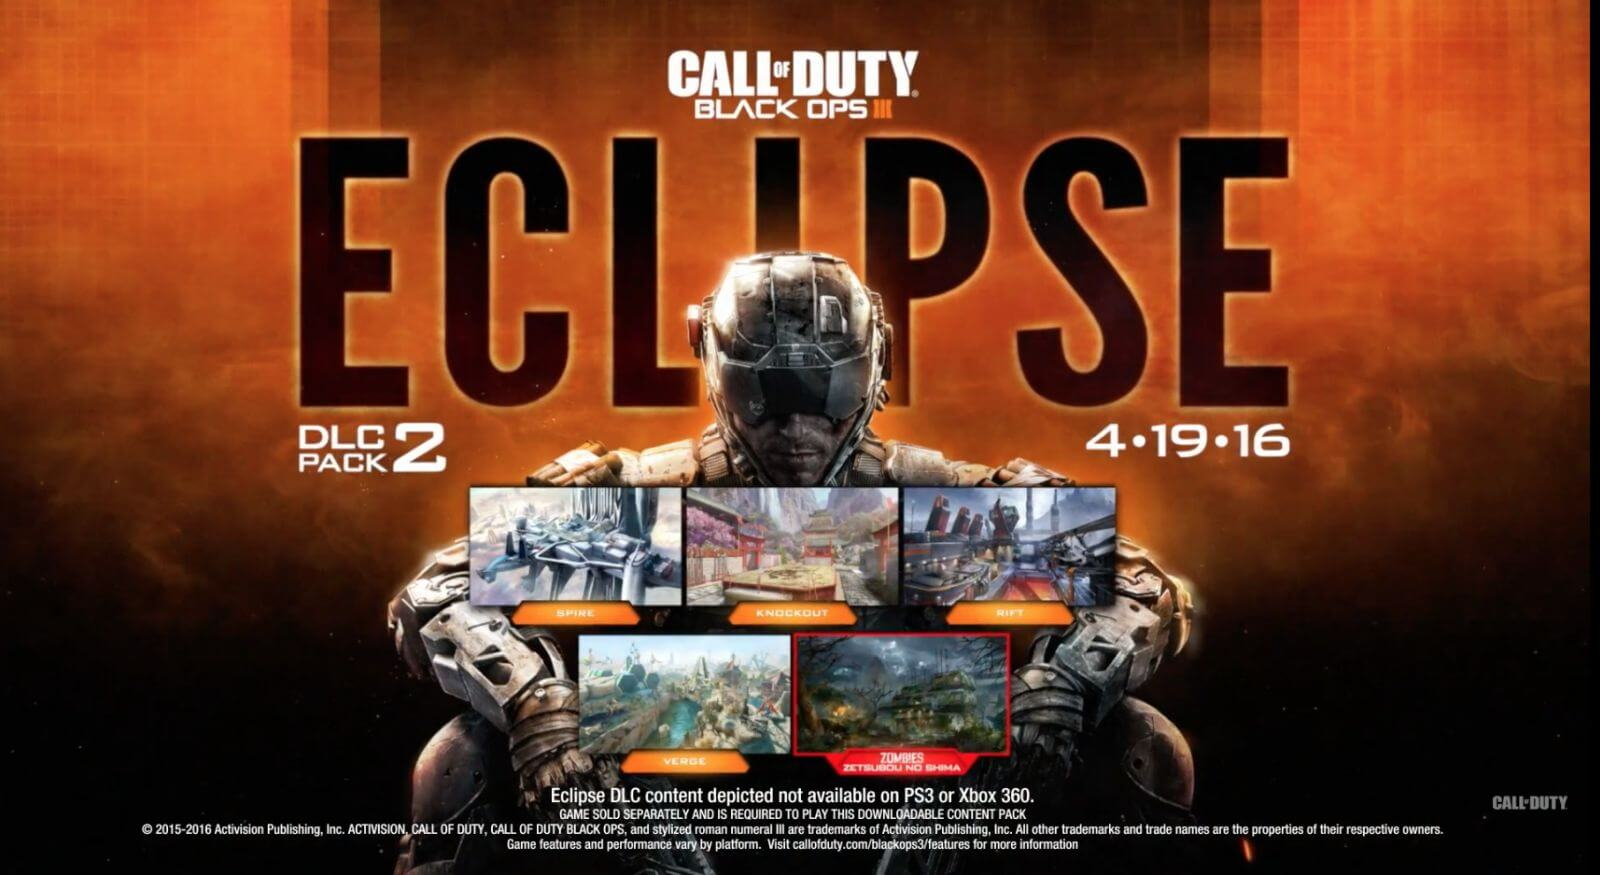 call-of-duty-black-ops-3-eclipse-shows-verge-design-banzai-influences-502588-2